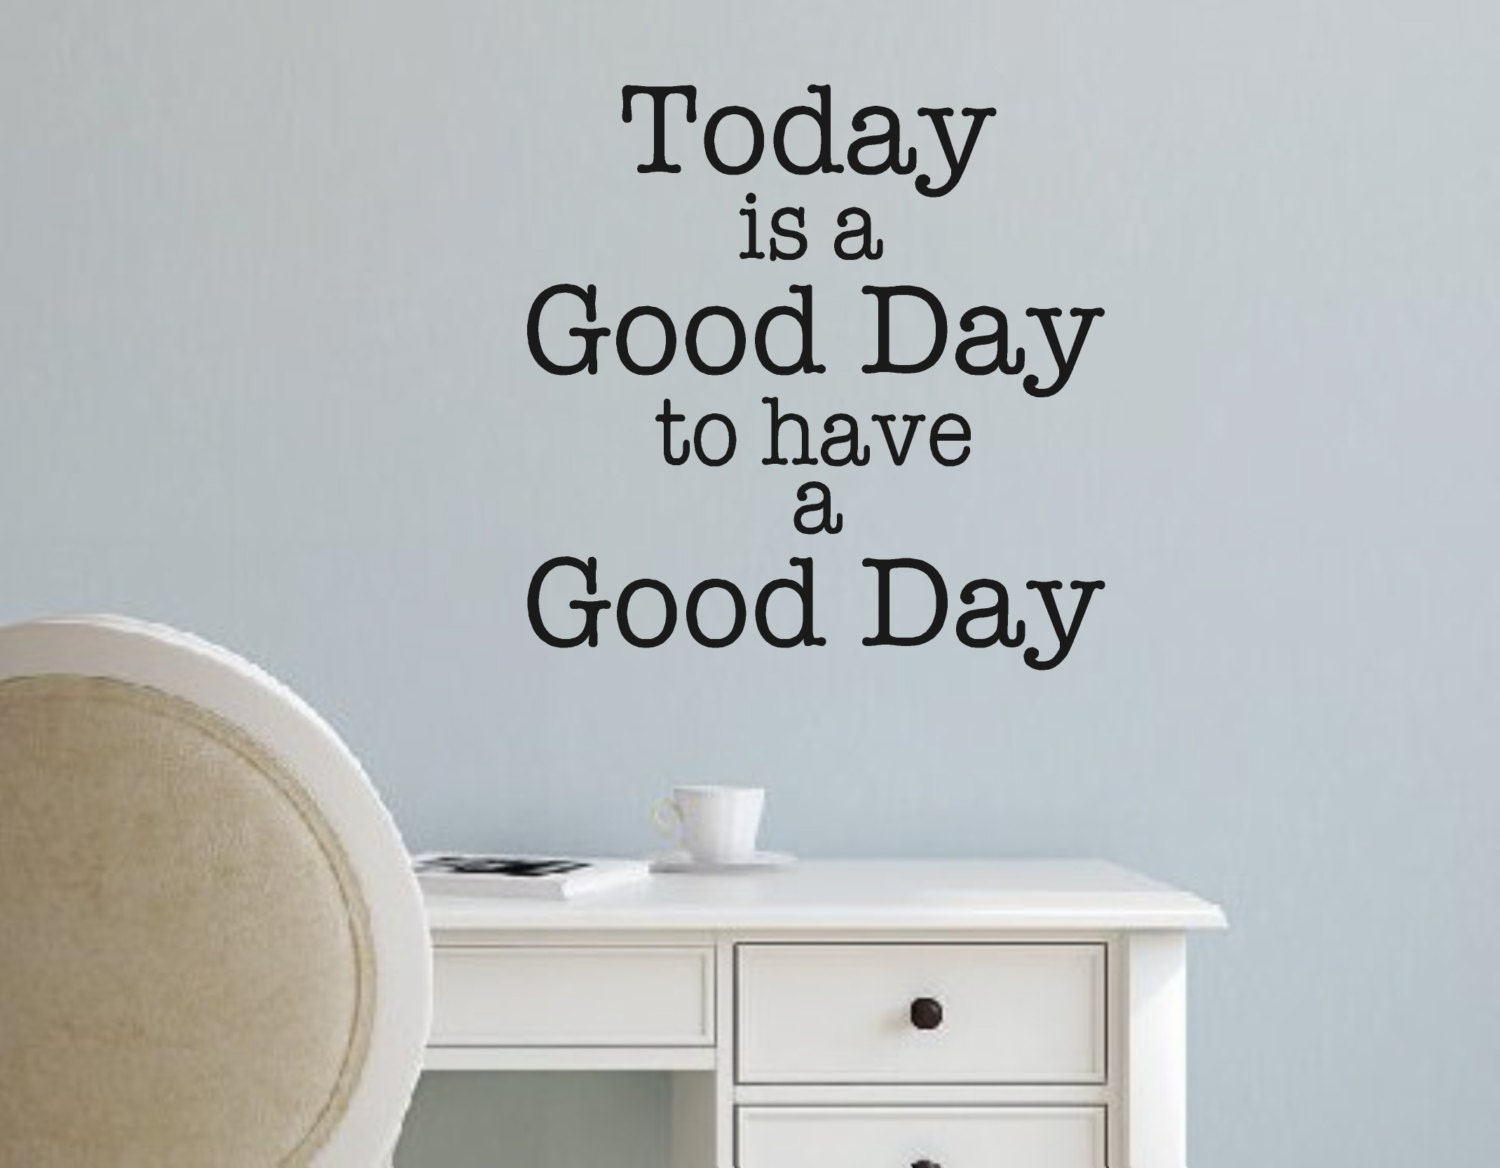 Vinyl Wall Decal Today Is A Good Day To Have A Good DayWall - Vinyl decals for the wall